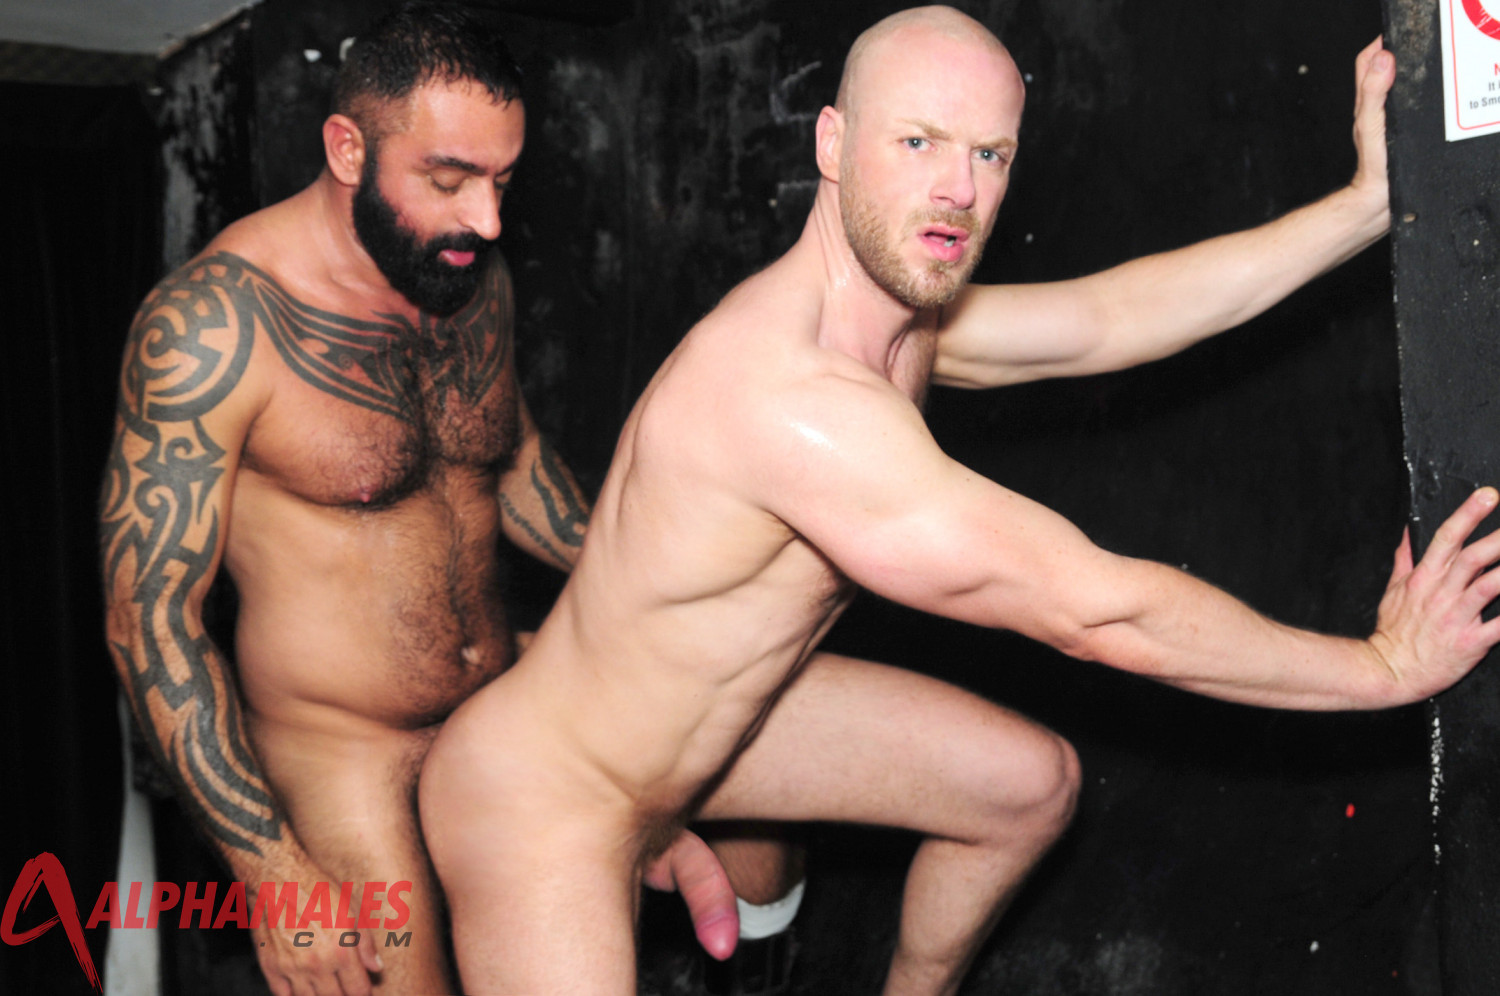 Alphamales Nathan Price and Tom Colt fucking 08 Thick Amatuer Uncut Cocks Fucking on the Dance Floor